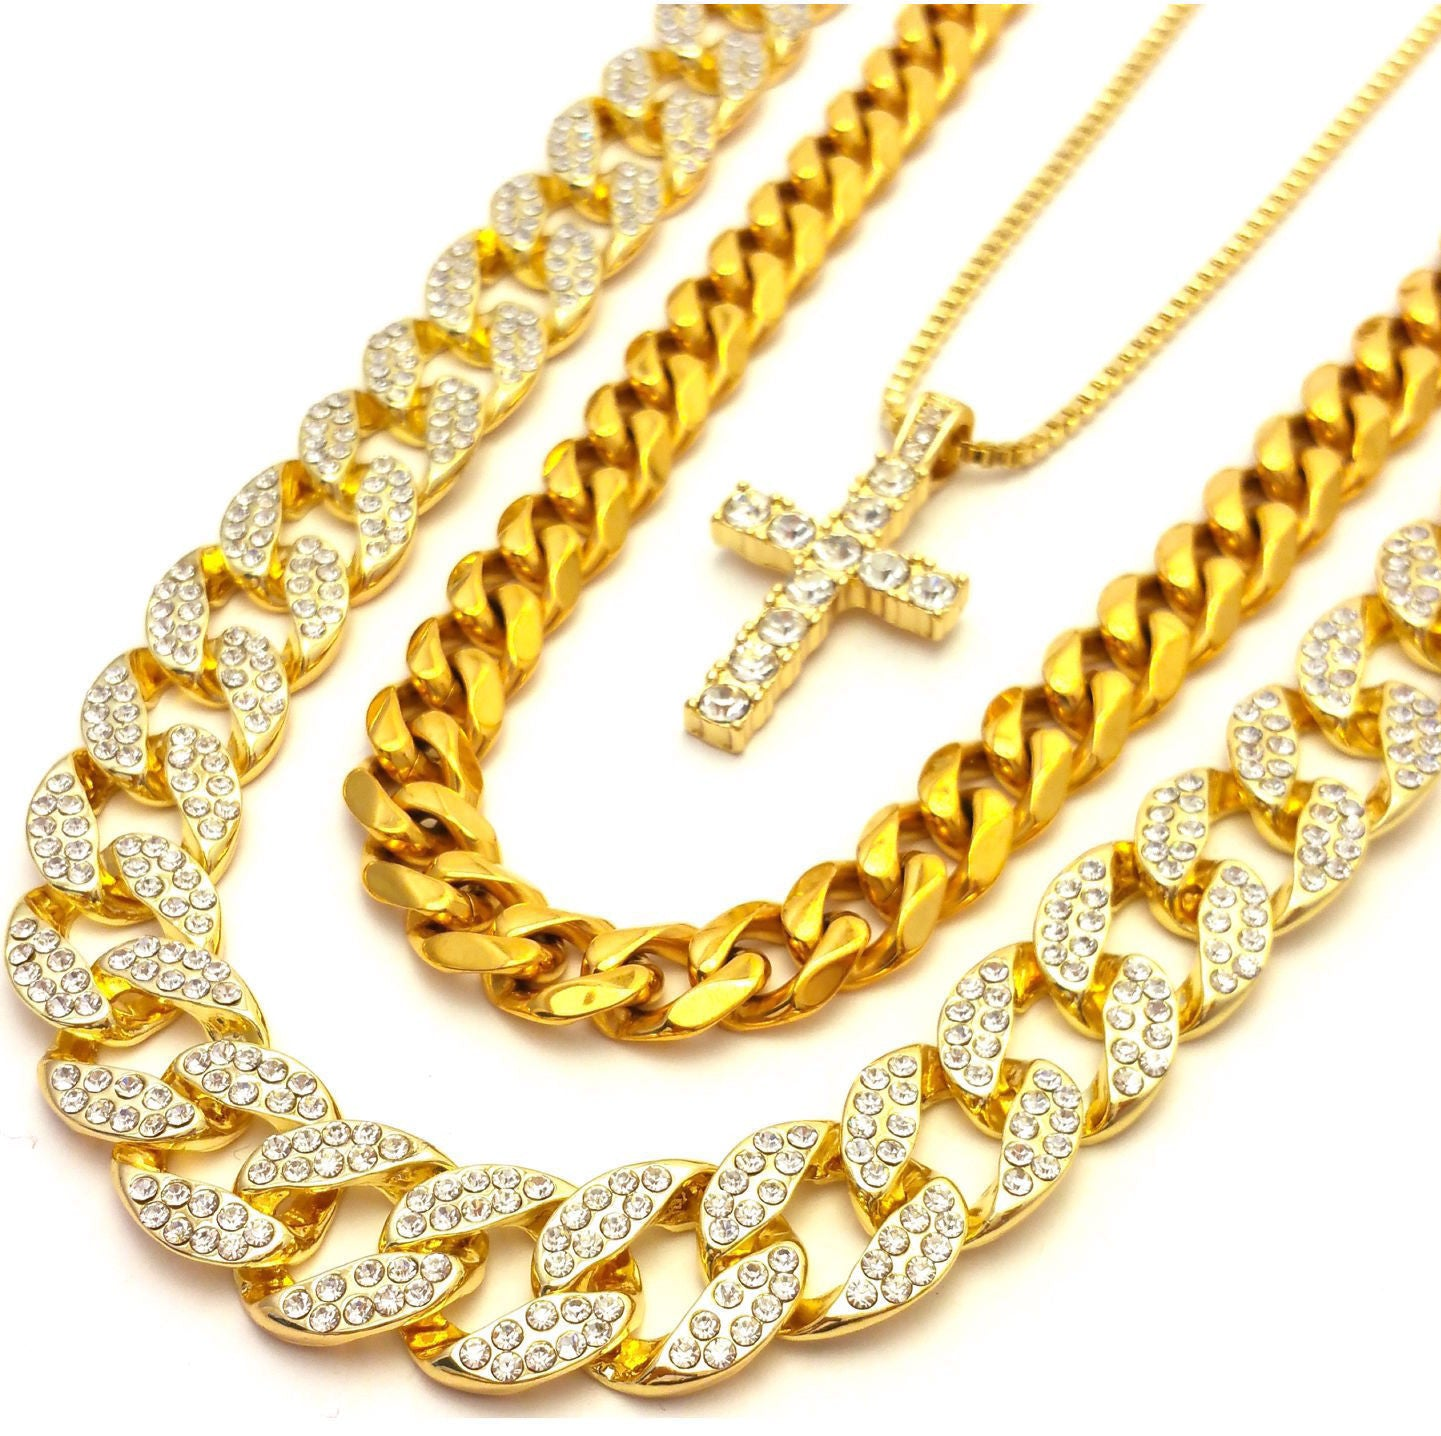 necklace italy twist gold rope brand itm ebay chain link new yellow s